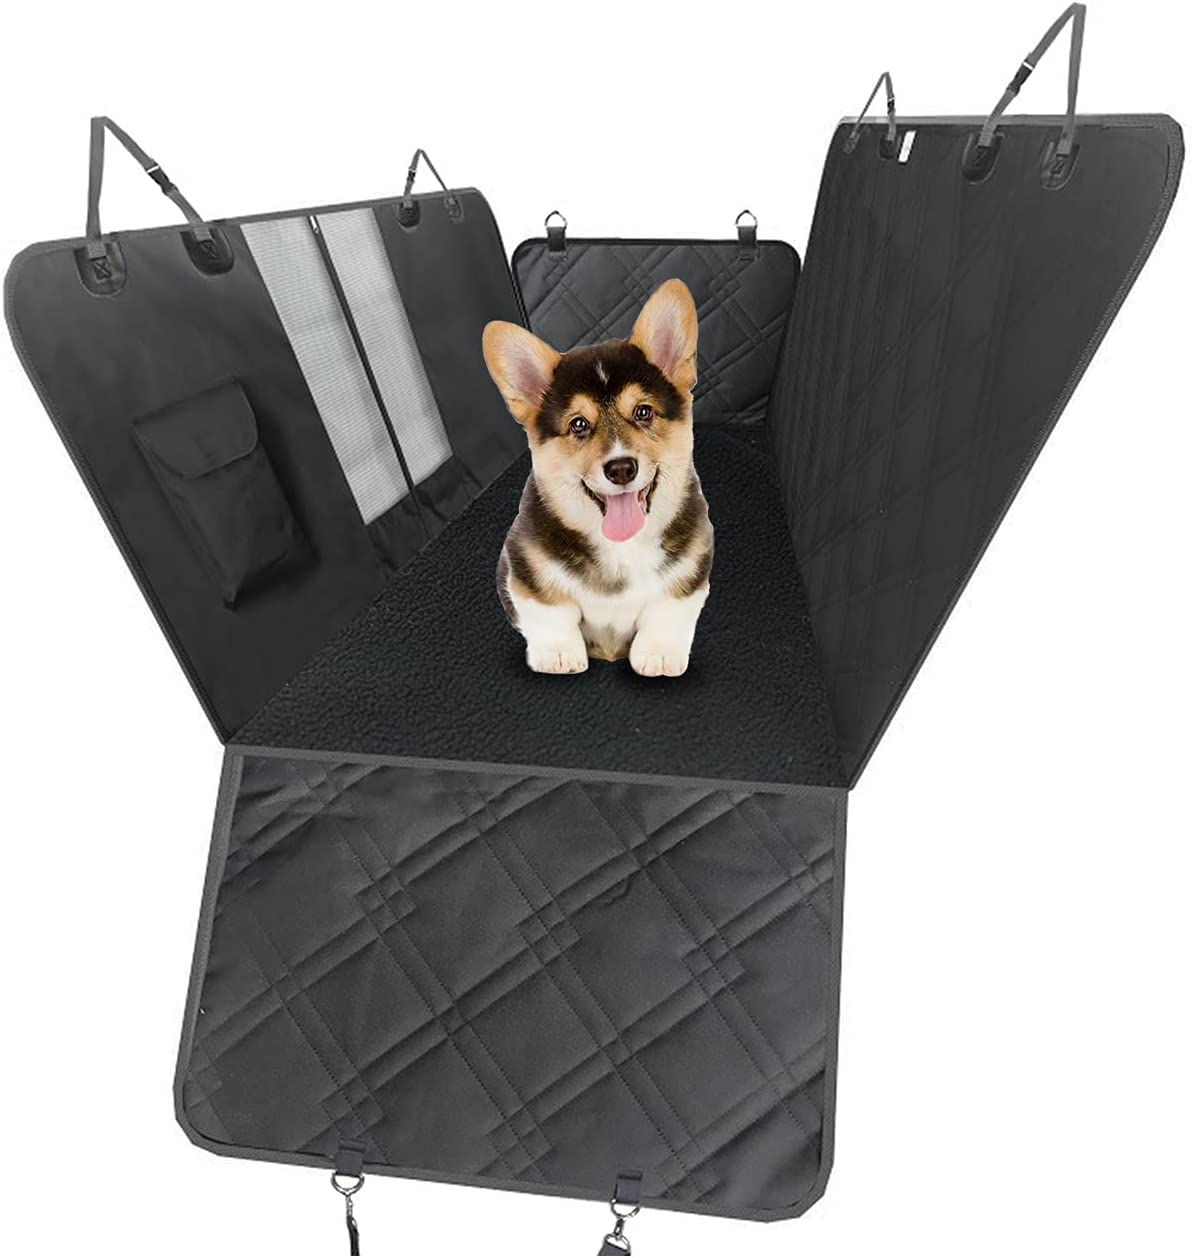 ELEGX Dog Car Seat Cover Omaha Mall SEAL limited product with Soft Hammock 600D Mesh Window